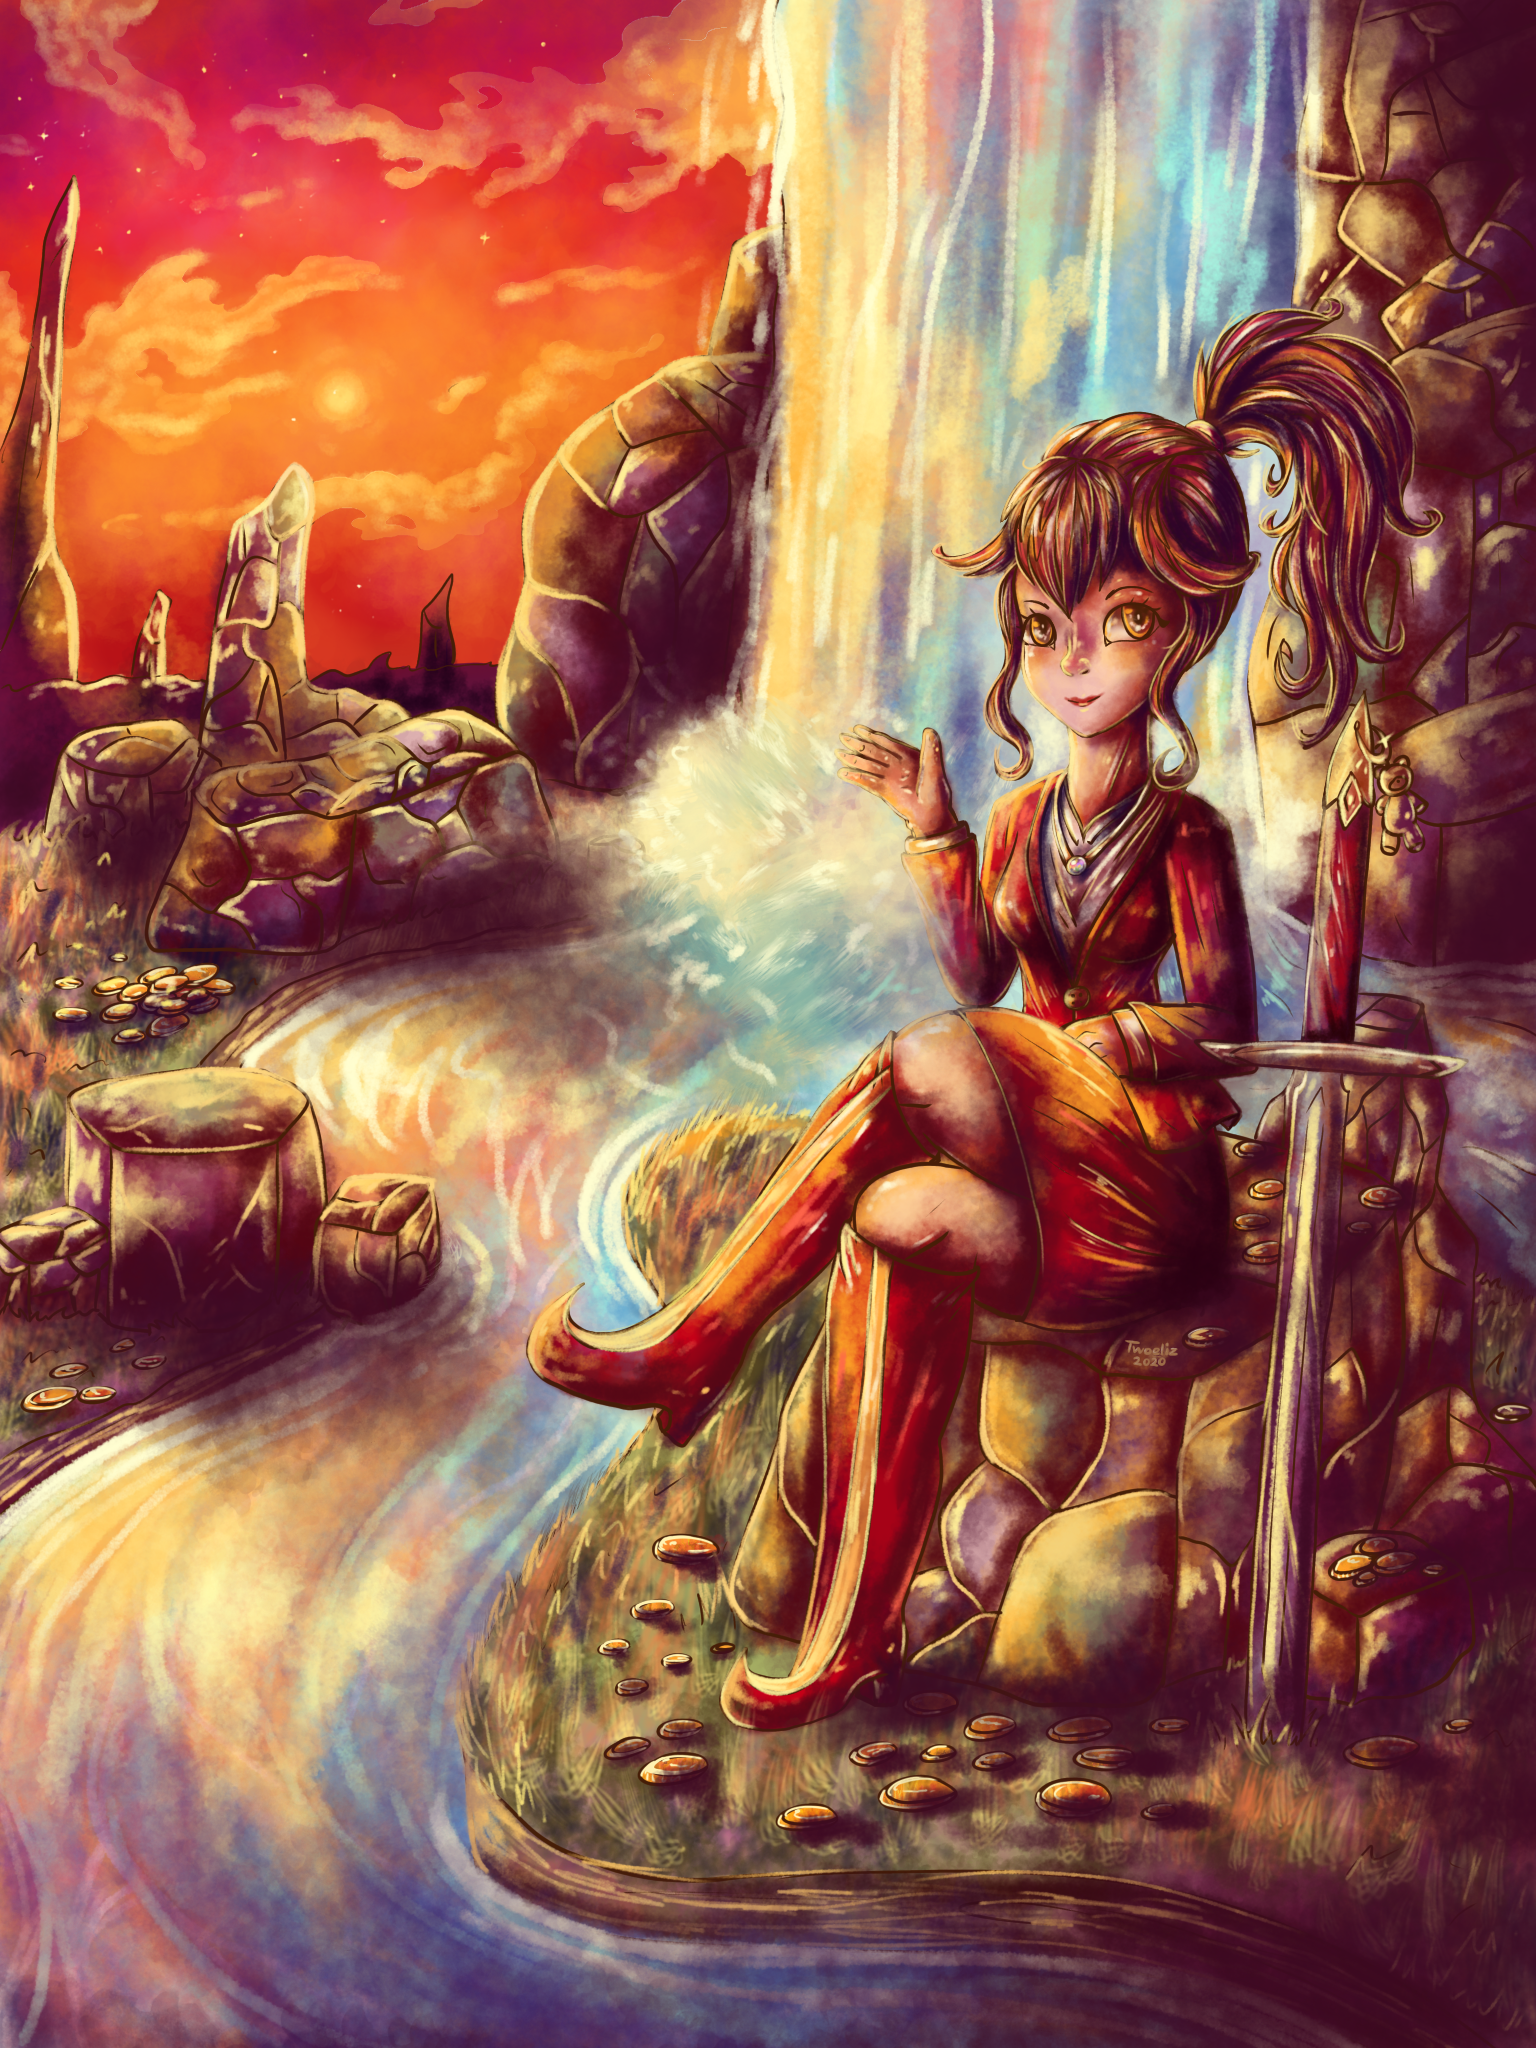 Anna and the Waterfall for SoulstoShadows